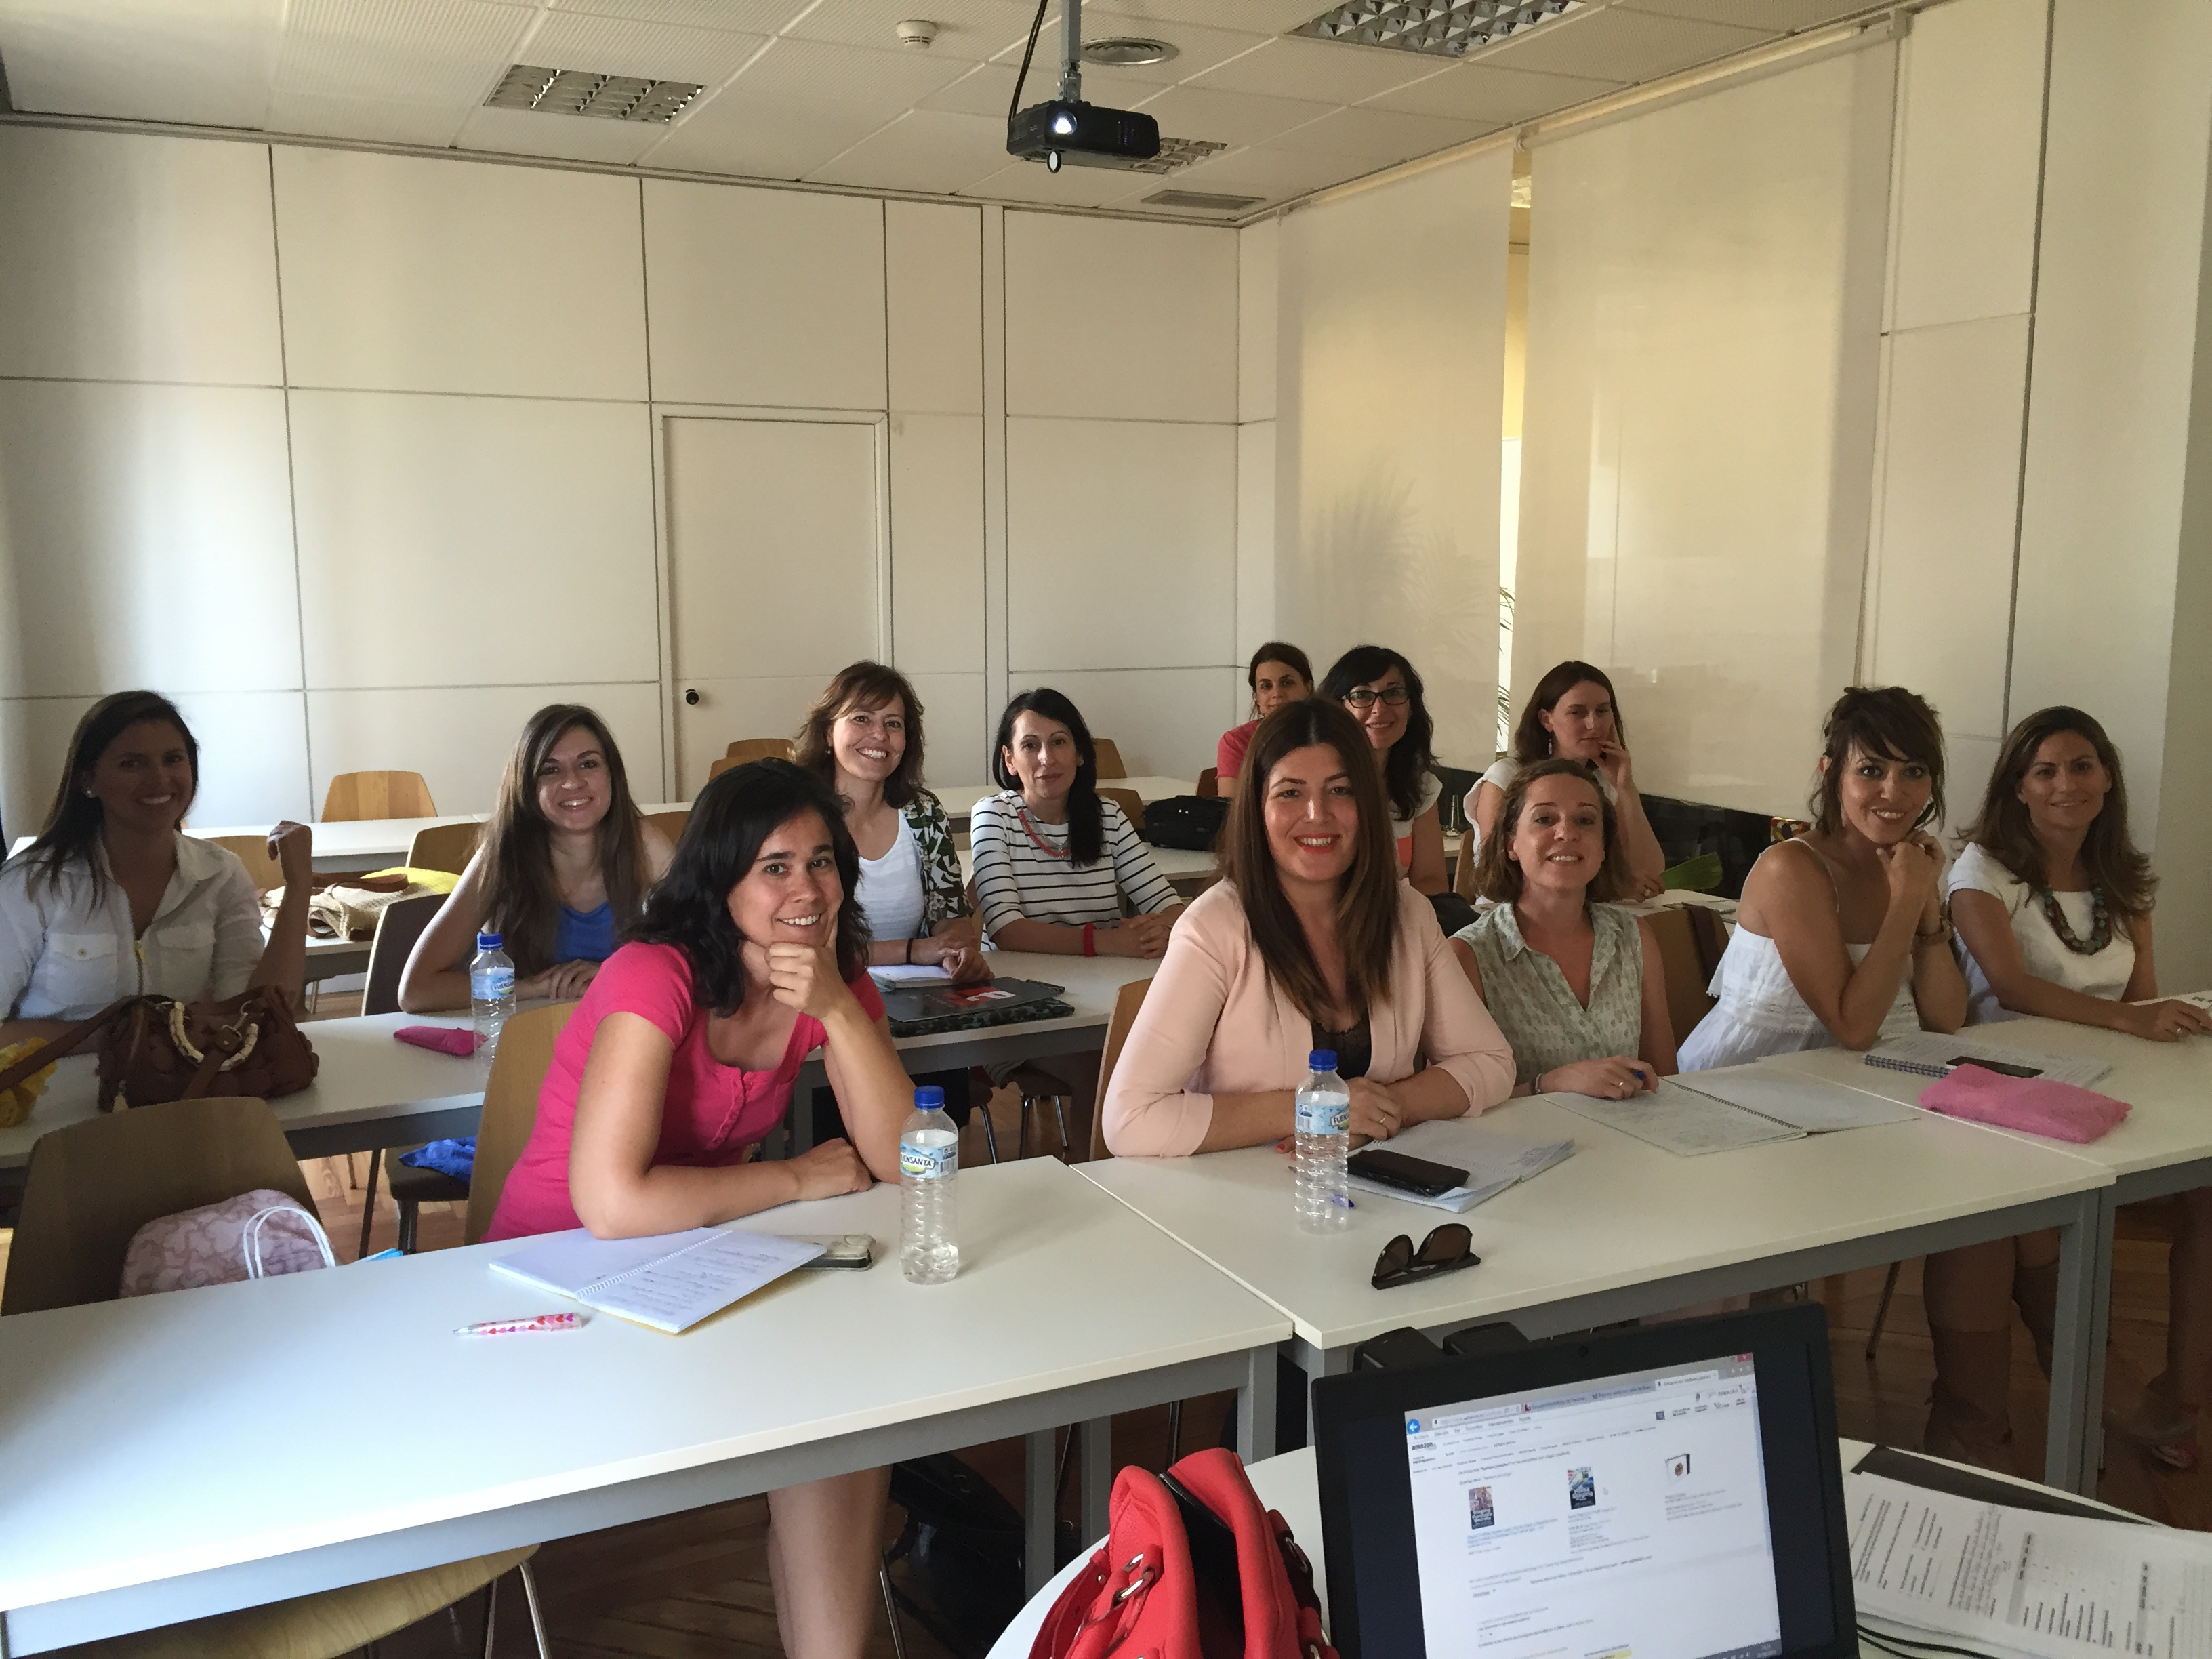 Curso de home staging en esmadeco hsdecor - Home staging madrid ...